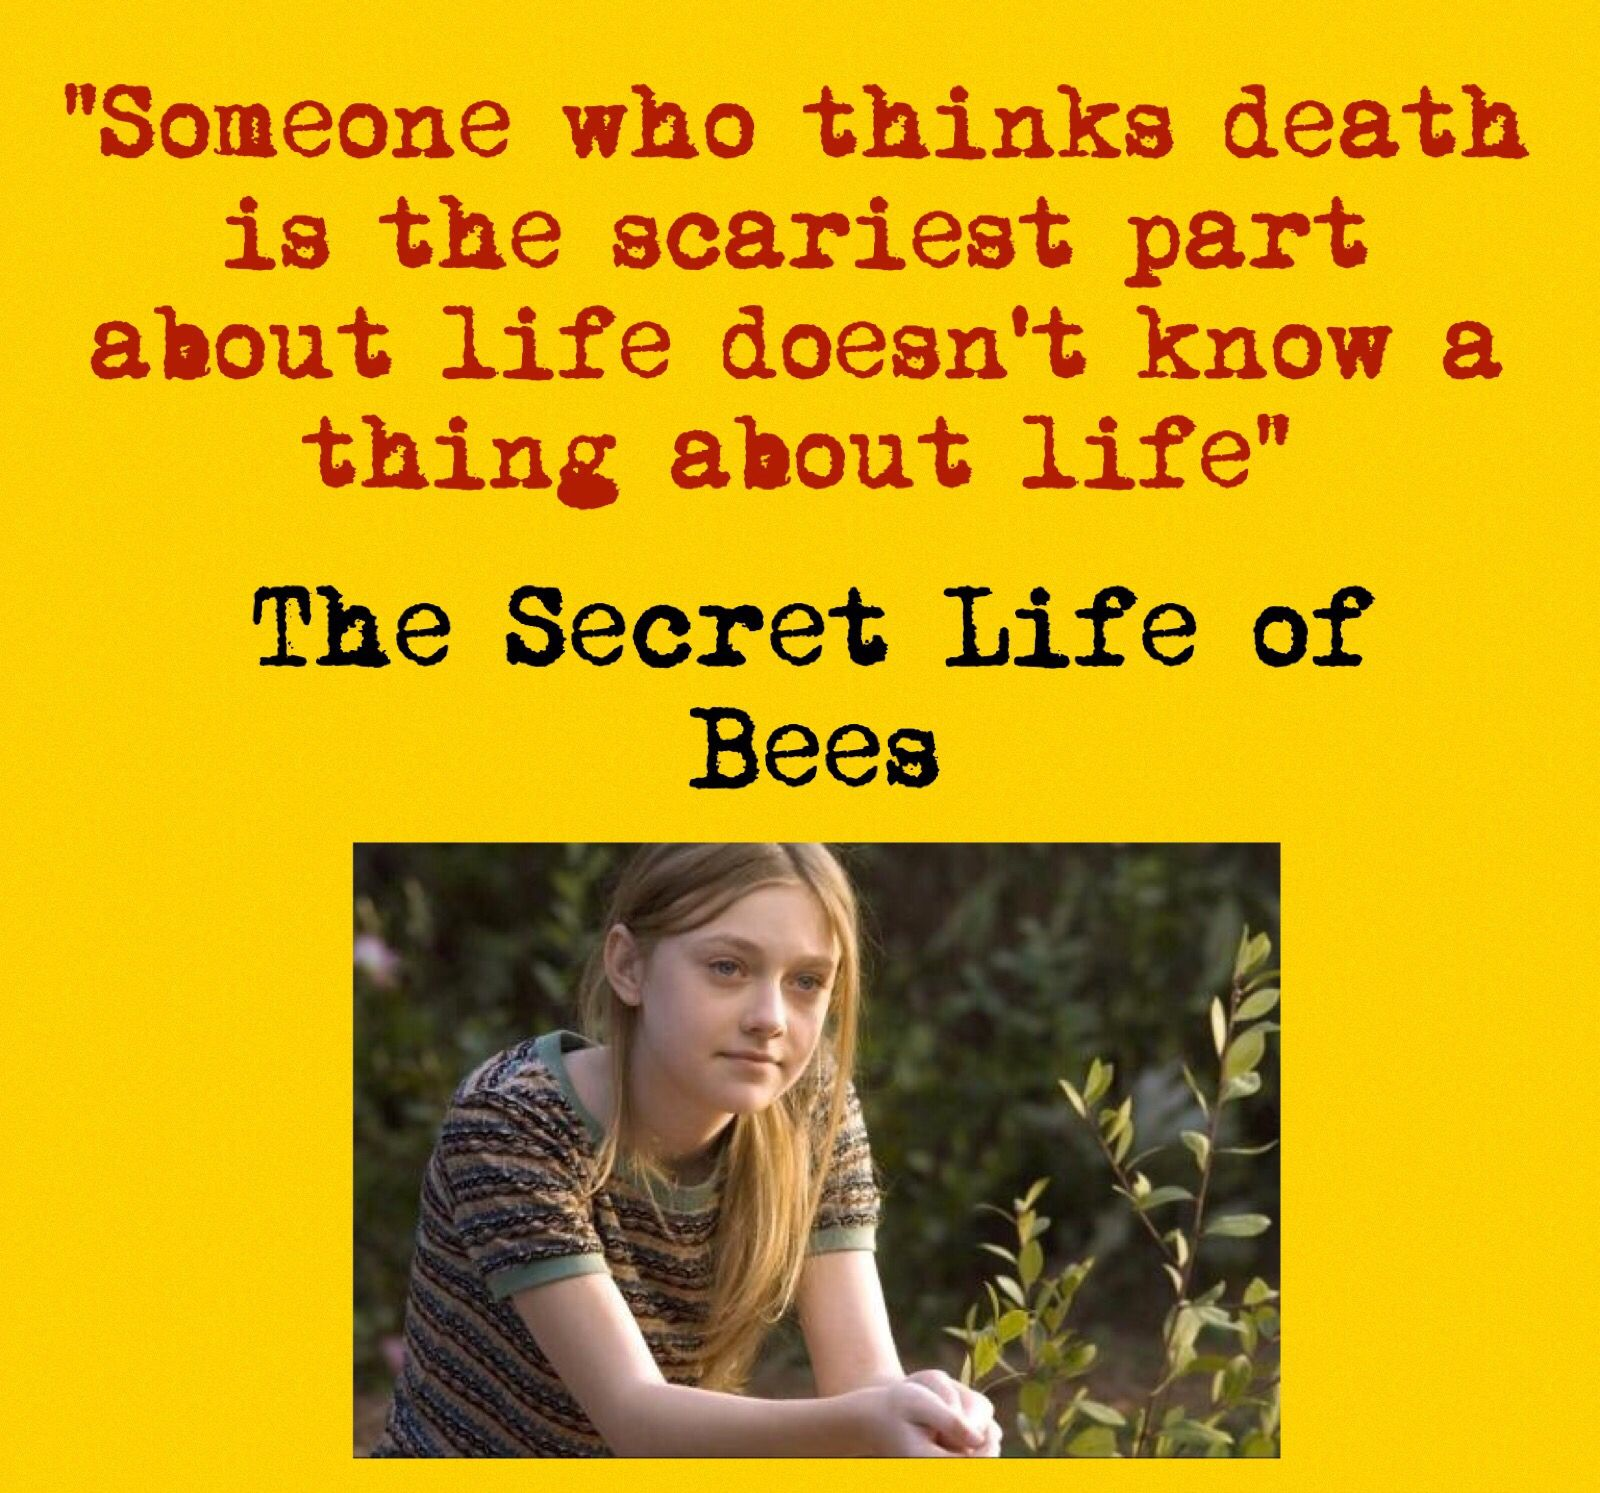 essay on secret life of bees Immediately download the the secret life of bees summary, chapter-by-chapter analysis, book notes, essays, quotes, character descriptions, lesson plans while reading the dramatic story of a young girl in the novel, the secret life of bees, i realized the hardships some people like lily owens encounter.